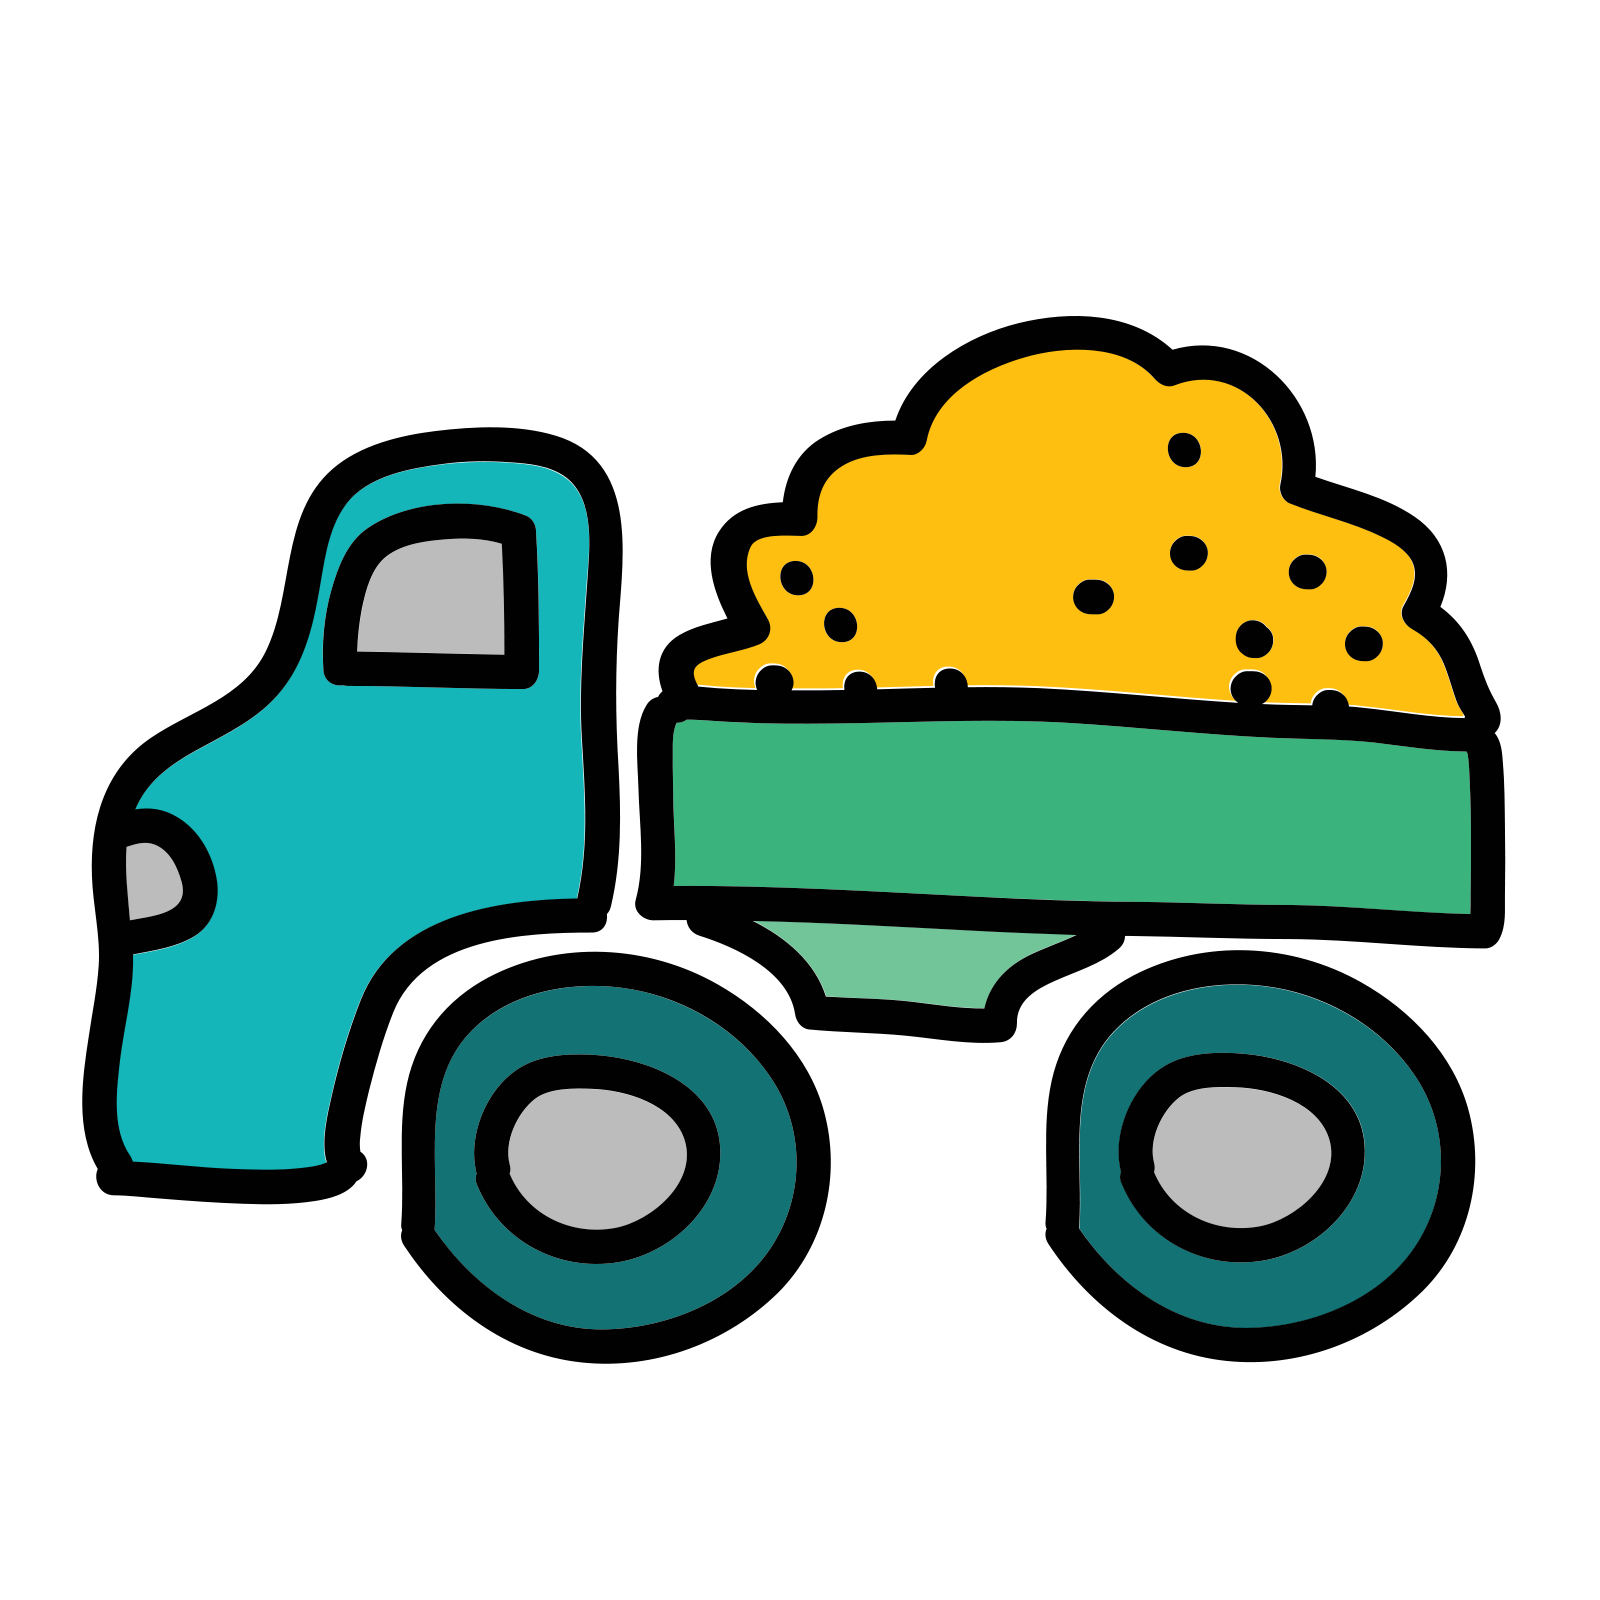 Trucking vector transportation truck. Container icon free download